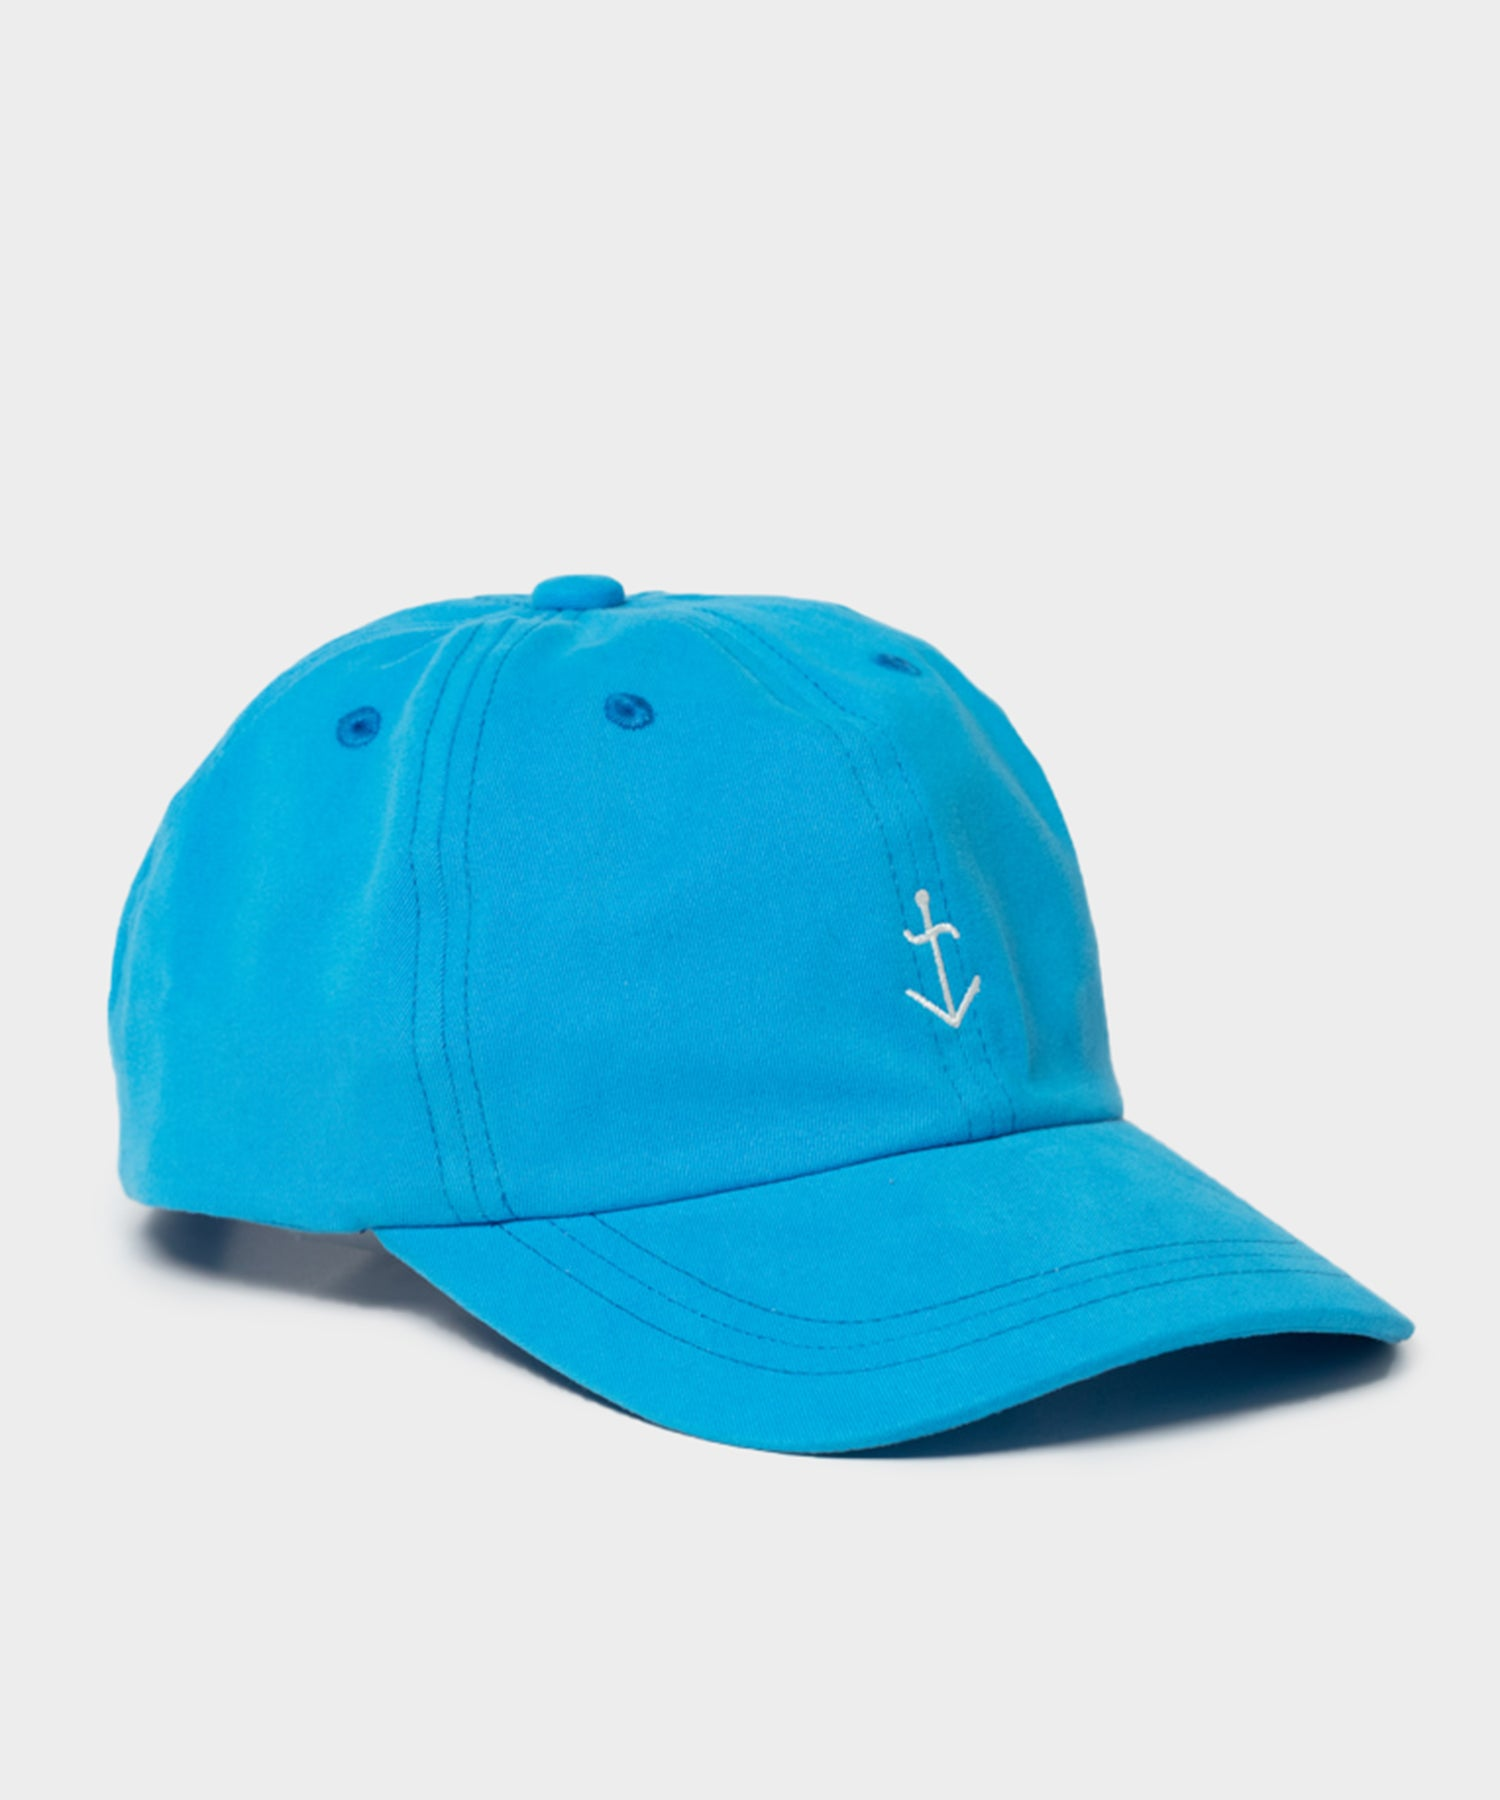 La Paz Santos Cap in Blue